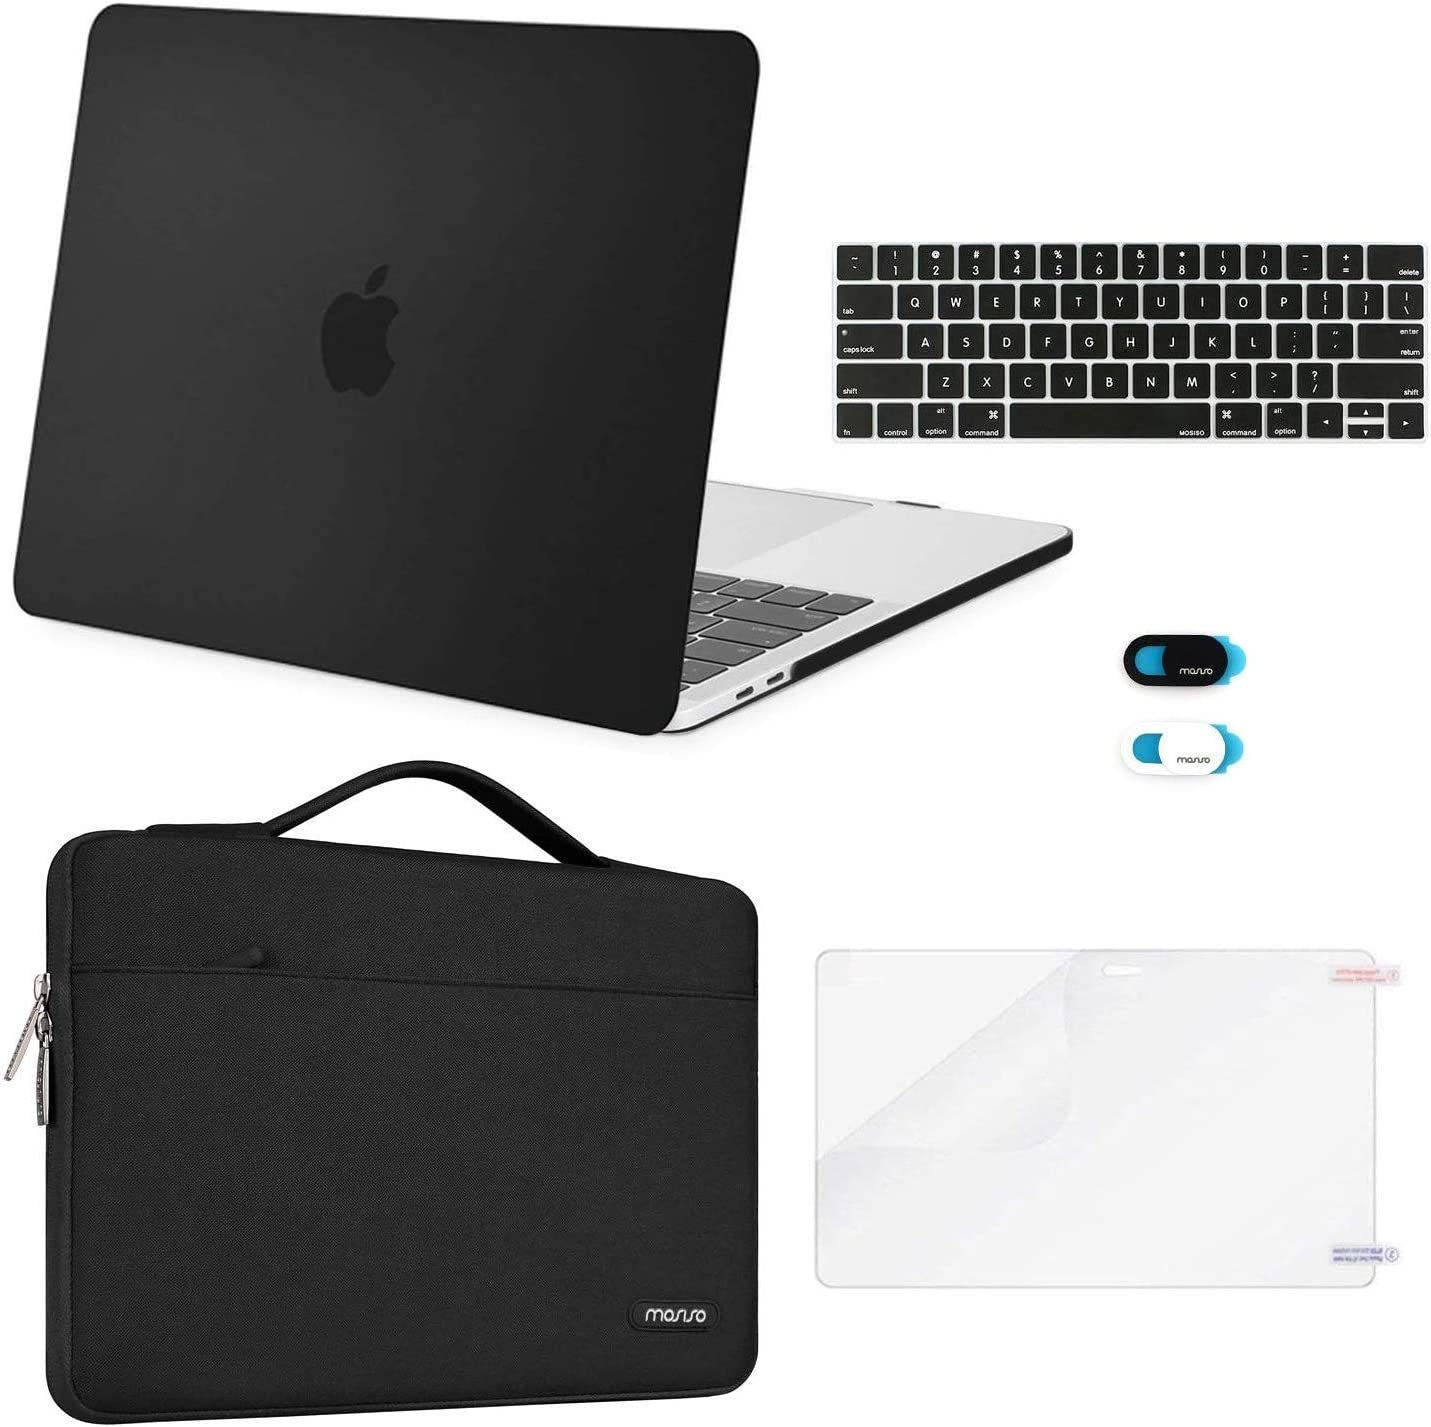 MOSISO Compatible with MacBook Pro 13 inch Case 2019 2018 2017 2016 Release A2159 A1989 A1706 A1708, Plastic Hard Shell Case&Sleeve Bag&Keyboard Skin&Webcam Cover&Screen Protector, Black